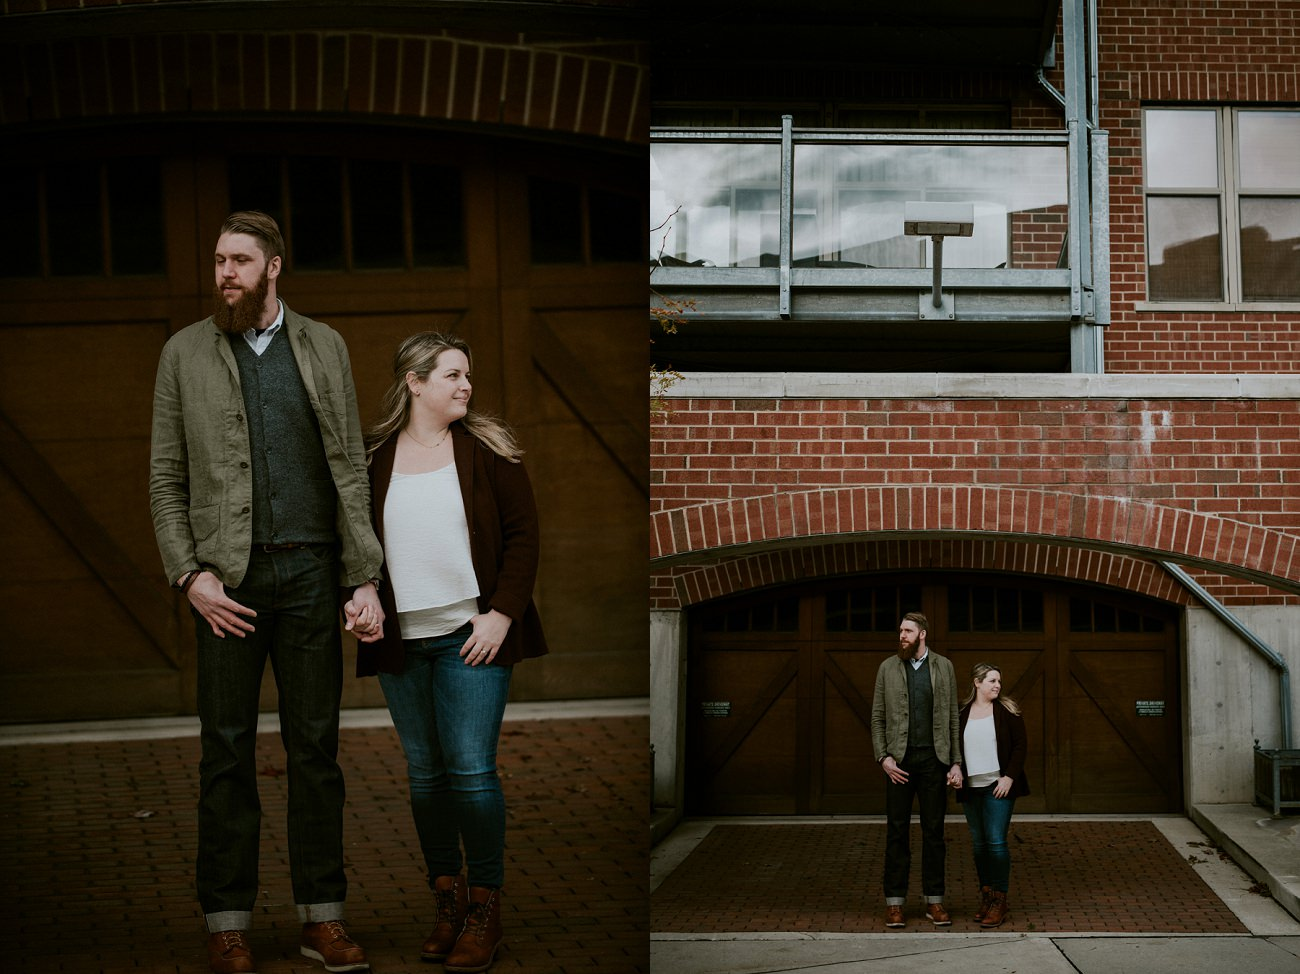 Fall City Engagement - Milwaukee Wisconsin Wedding Photographer - Natural Intuition Photography